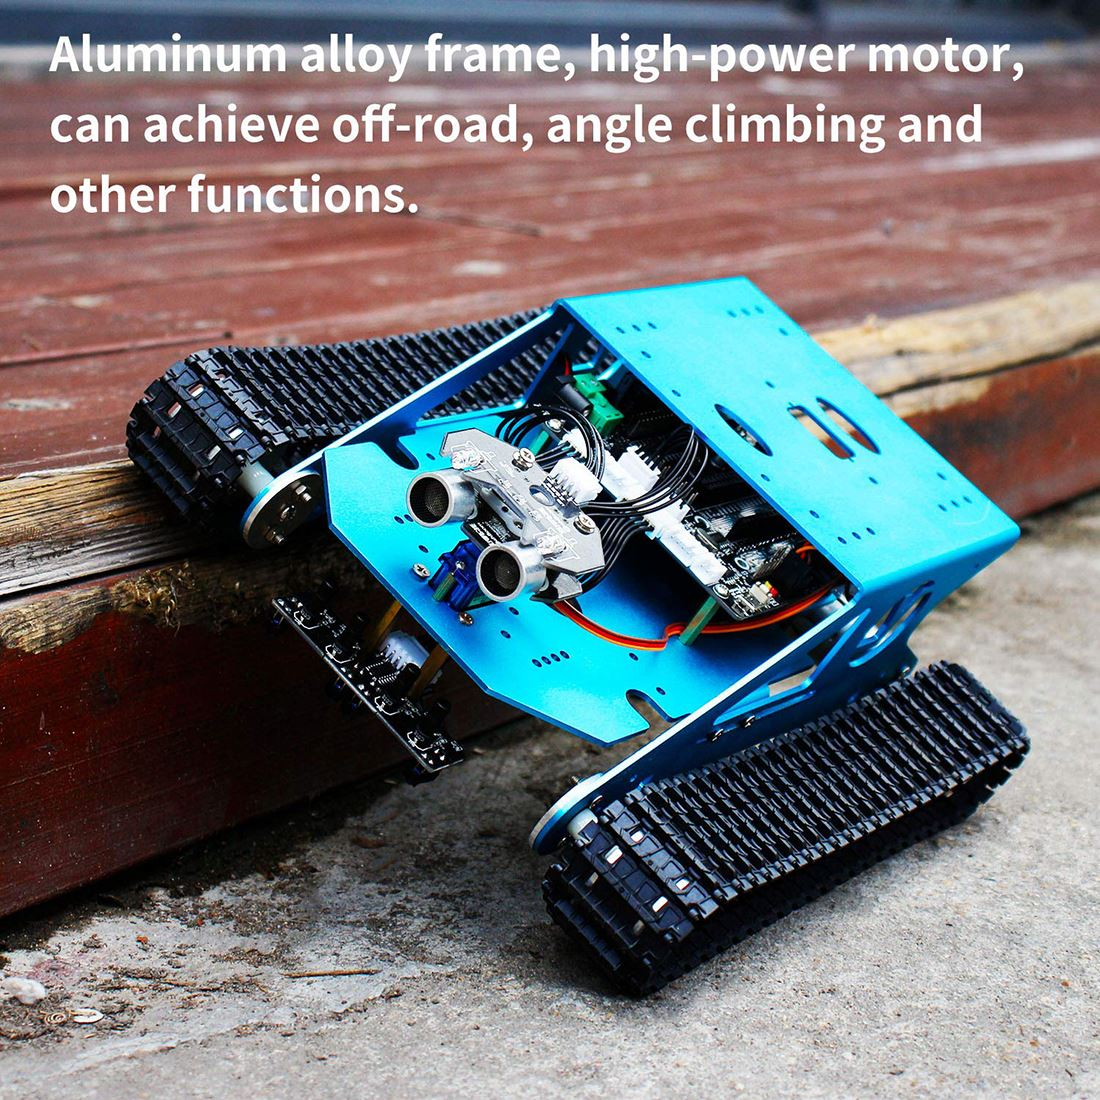 Track Robot Kit Programmable Smart Tank Mobile Platform Chassis Robot Kit Electronic Project Learning For Arduino UNO R3